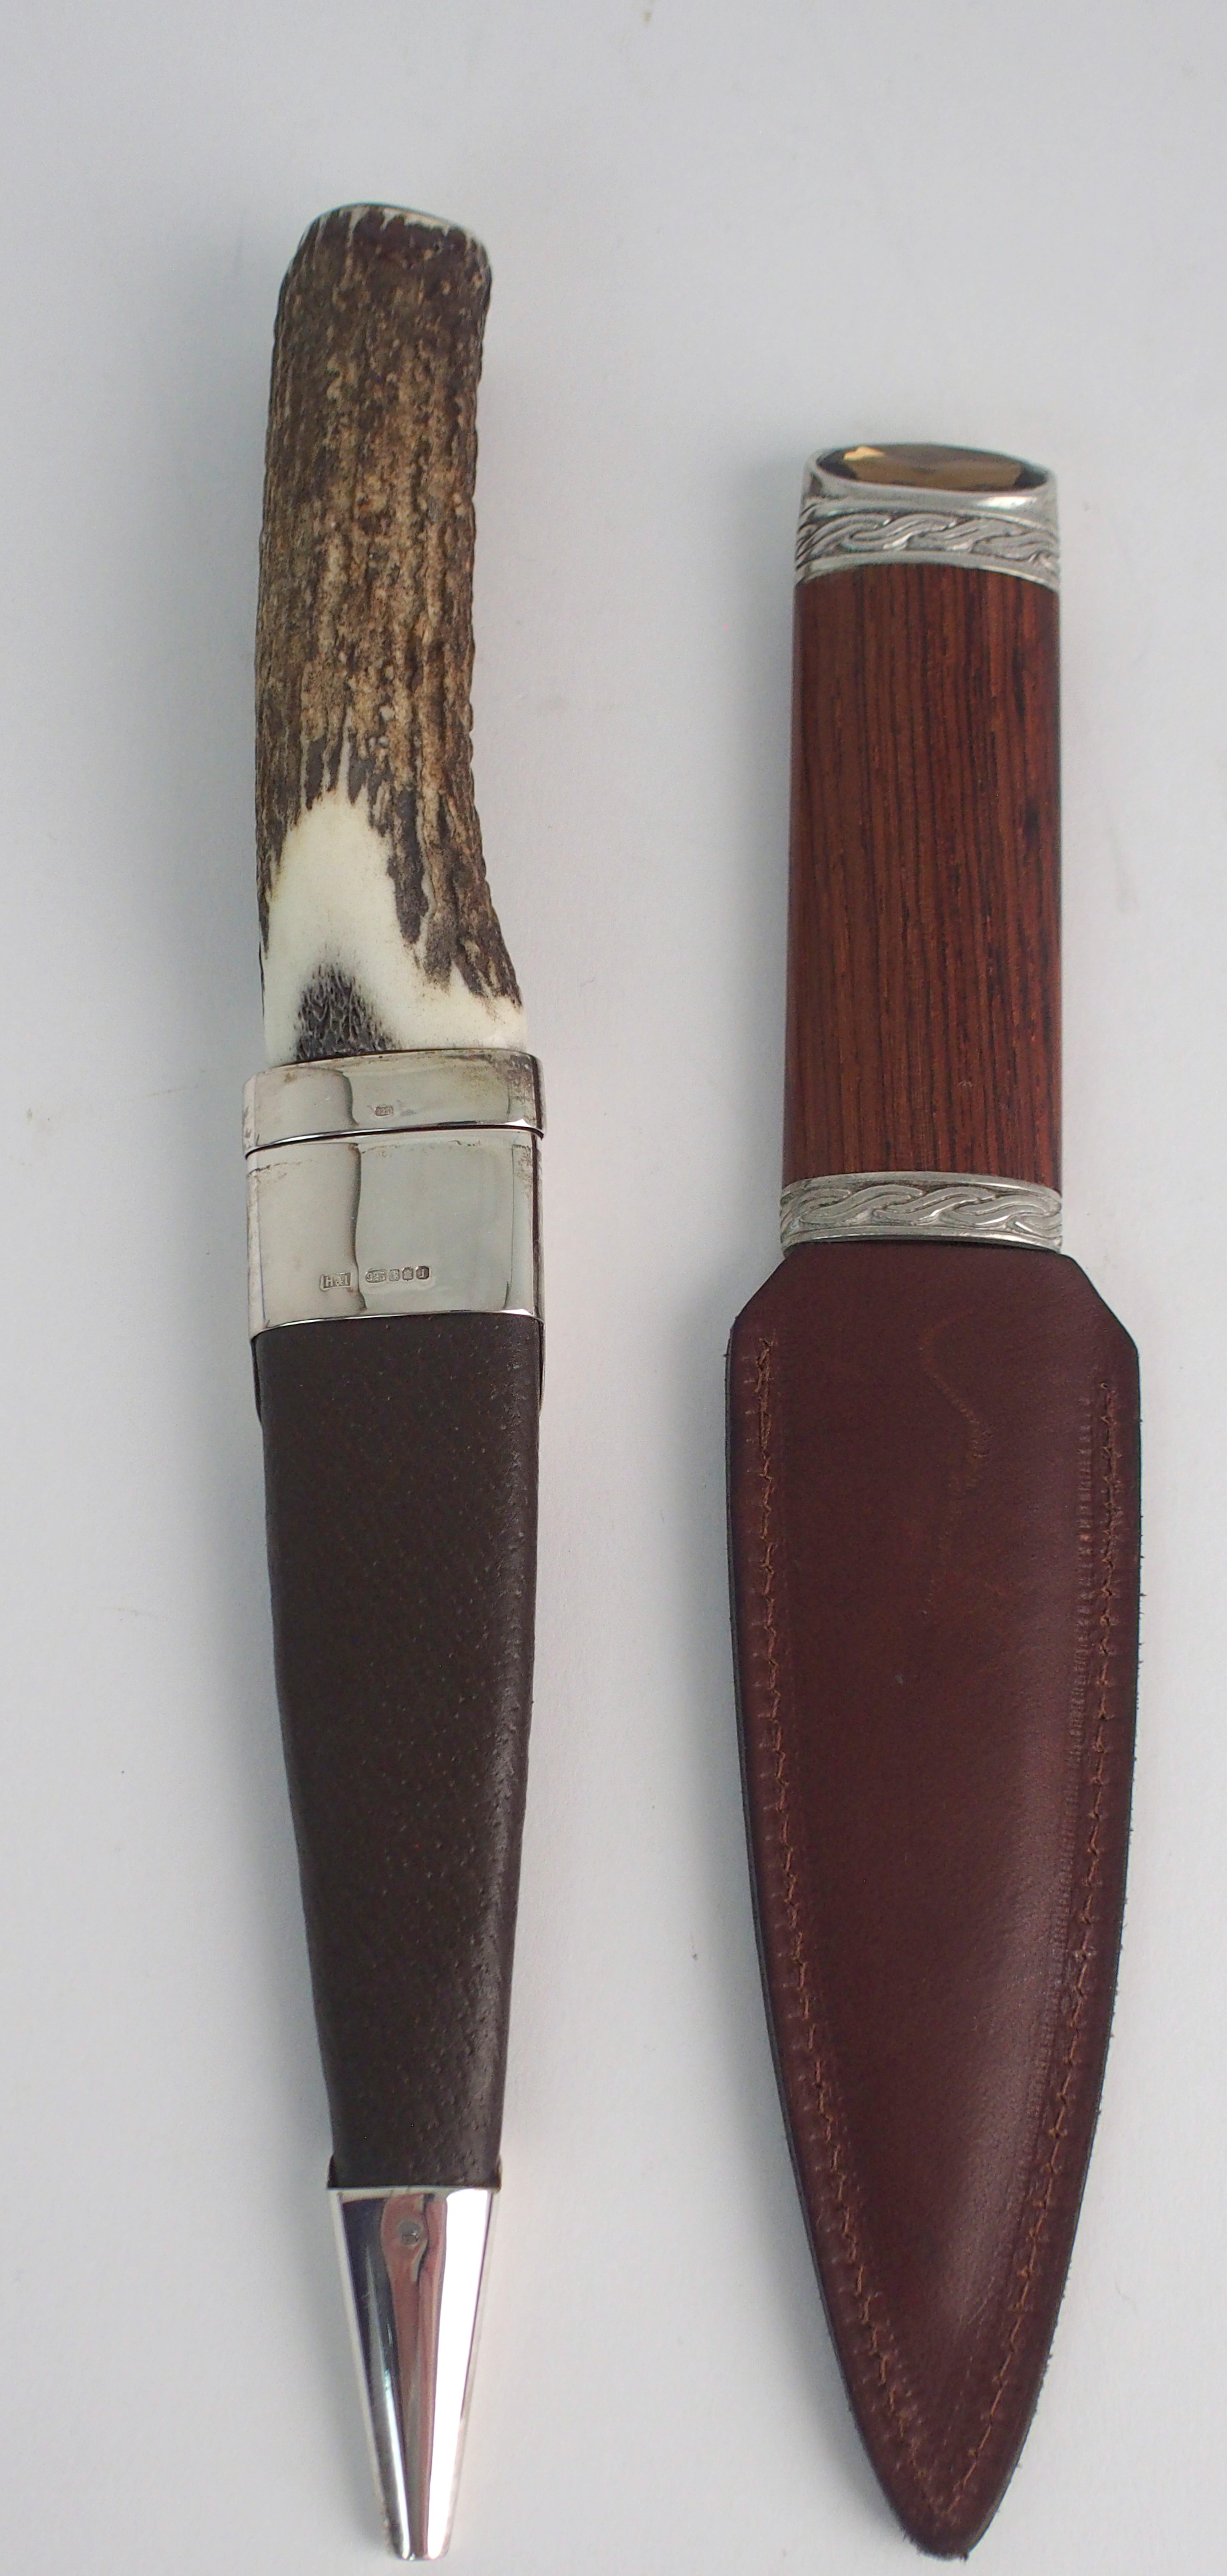 A SILVER-MOUNTED SGIAN DUBH BY HAMILTON & INCHES with brown goatskin scabbard and stag antler handle - Image 2 of 4